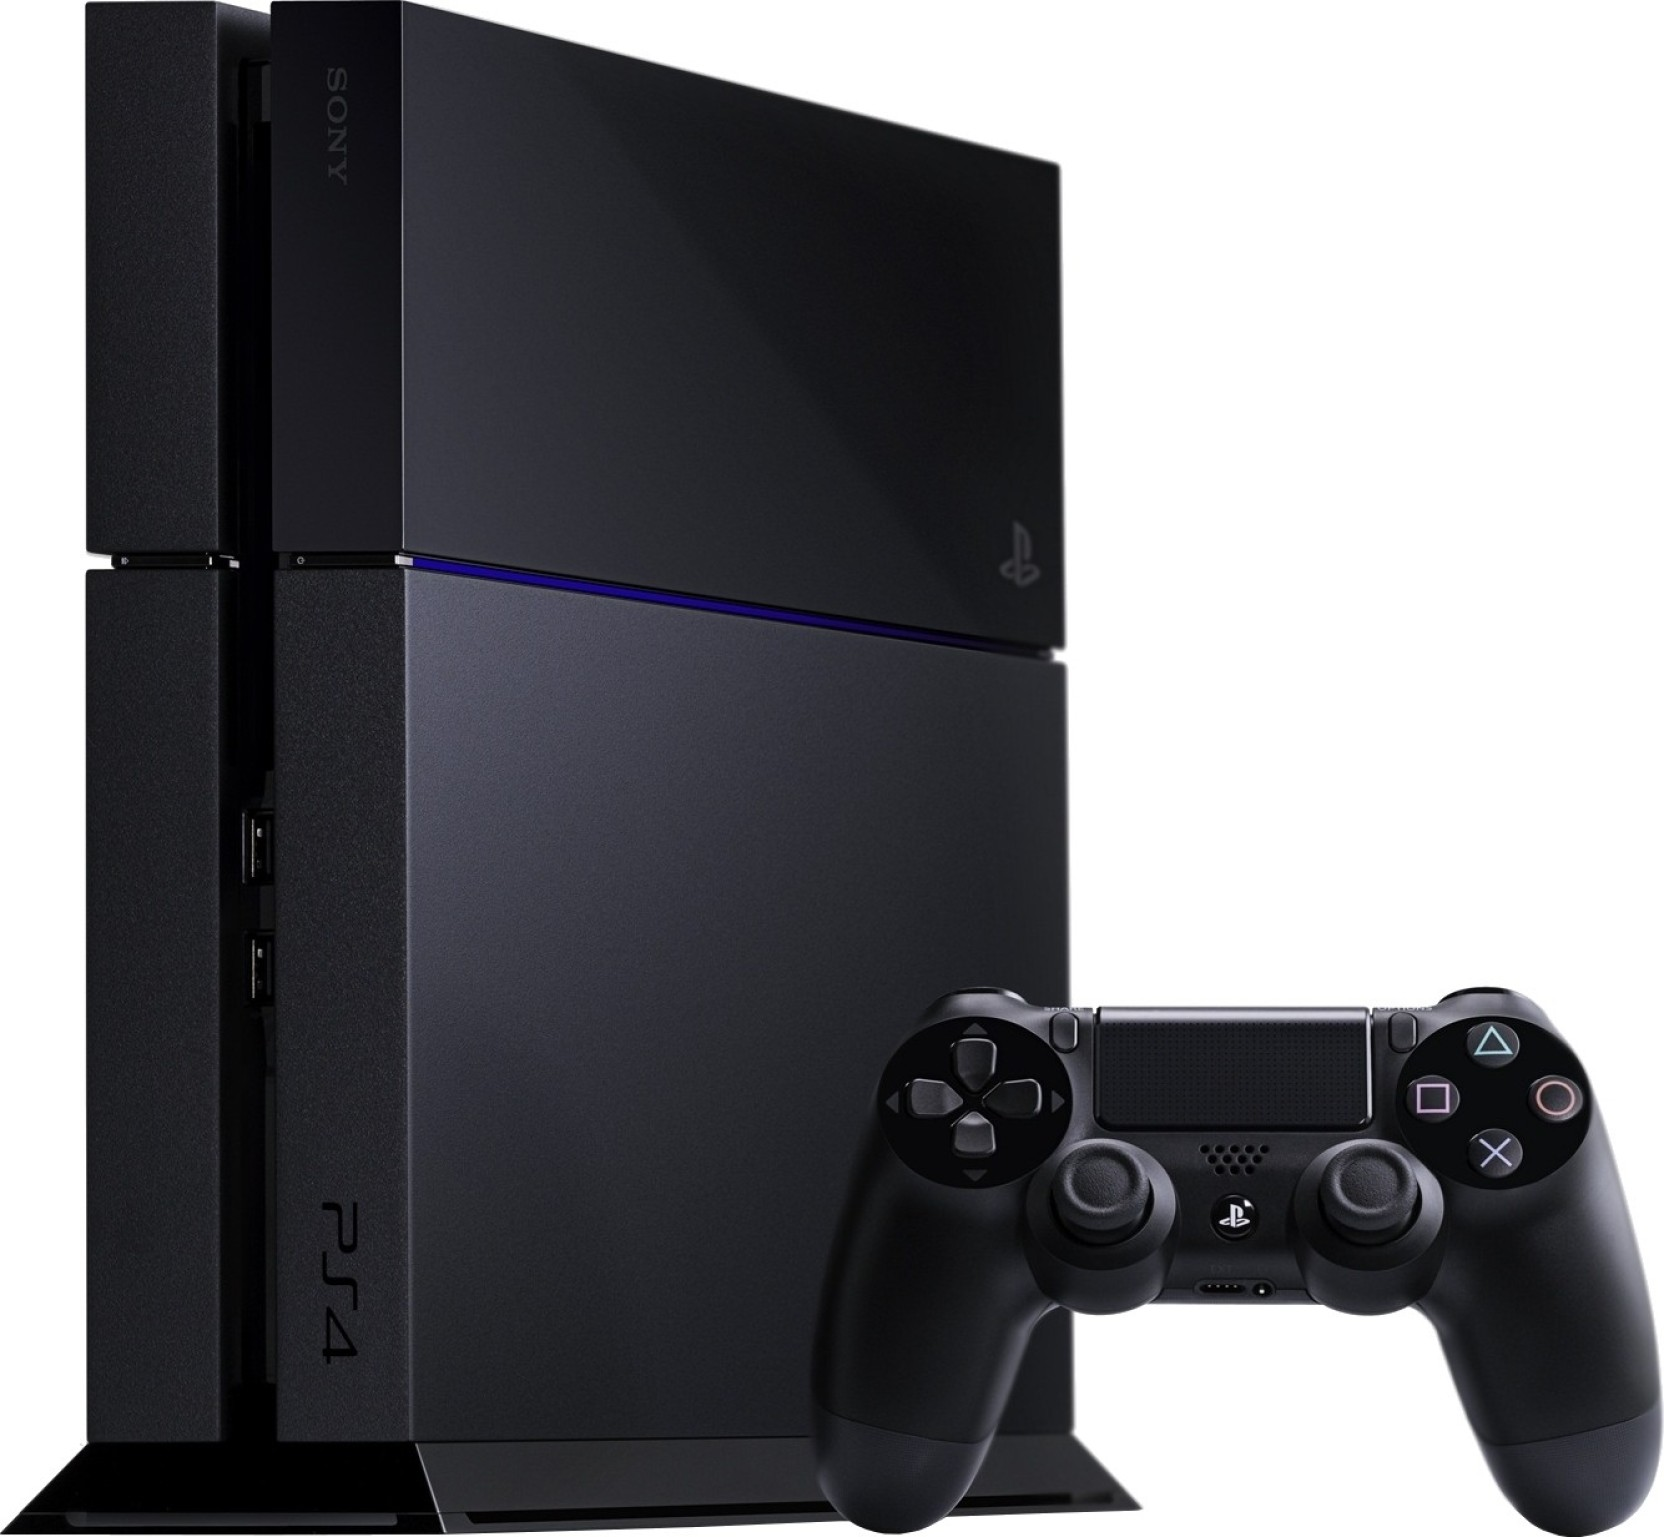 Sony Playstation 4 Ps4 500 Gb Price In India Buy 500gb Kamera Home